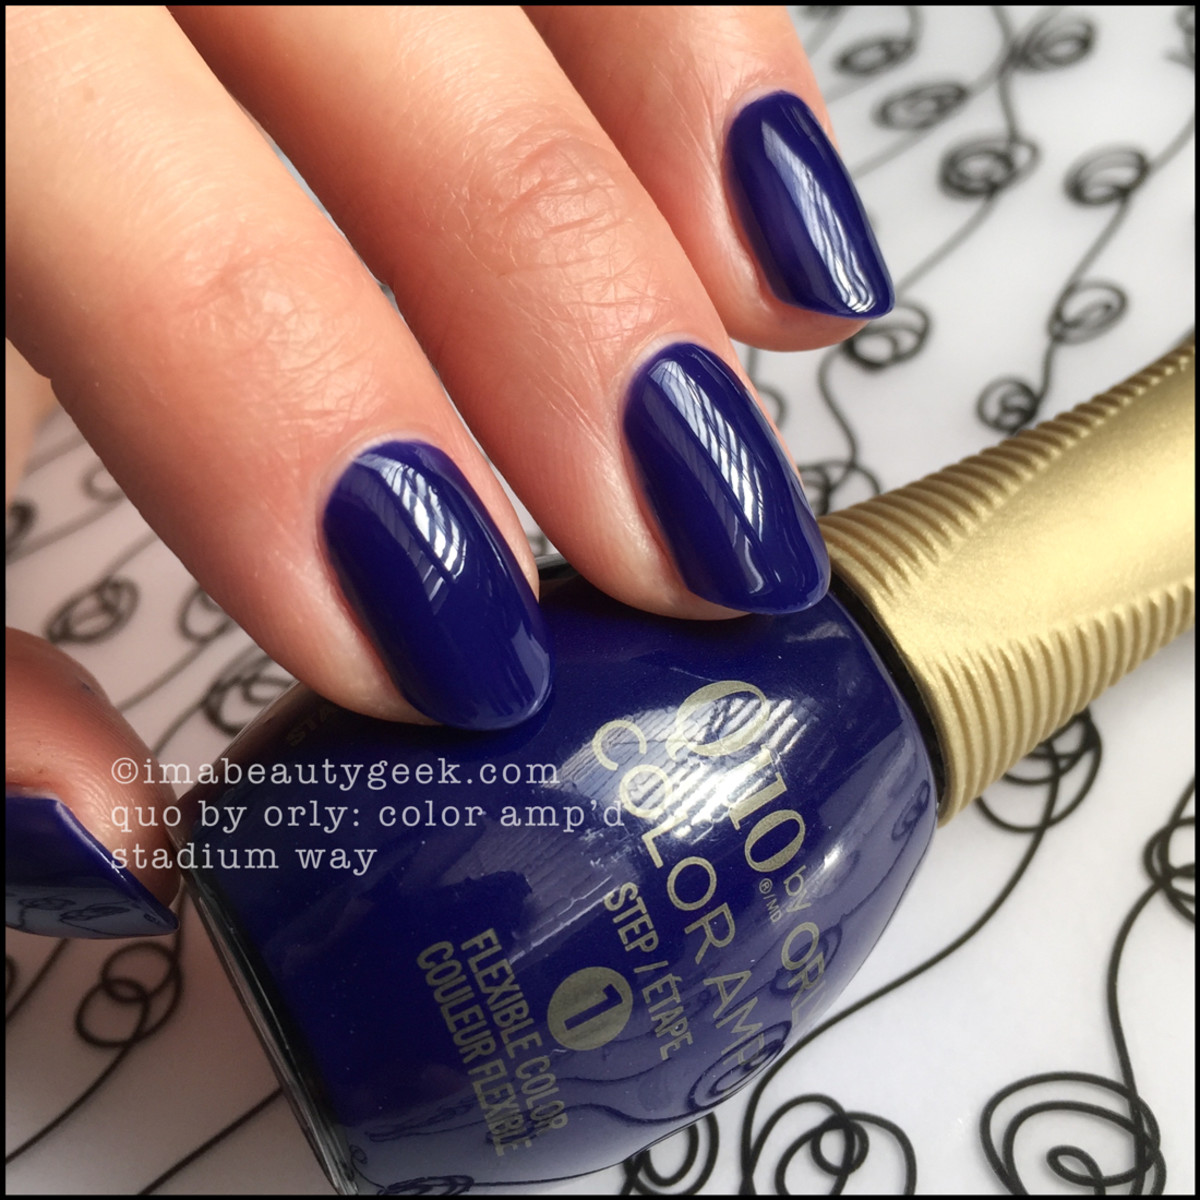 Quo Color Ampd Stadium Way_Quo by Orly Epix Swatches